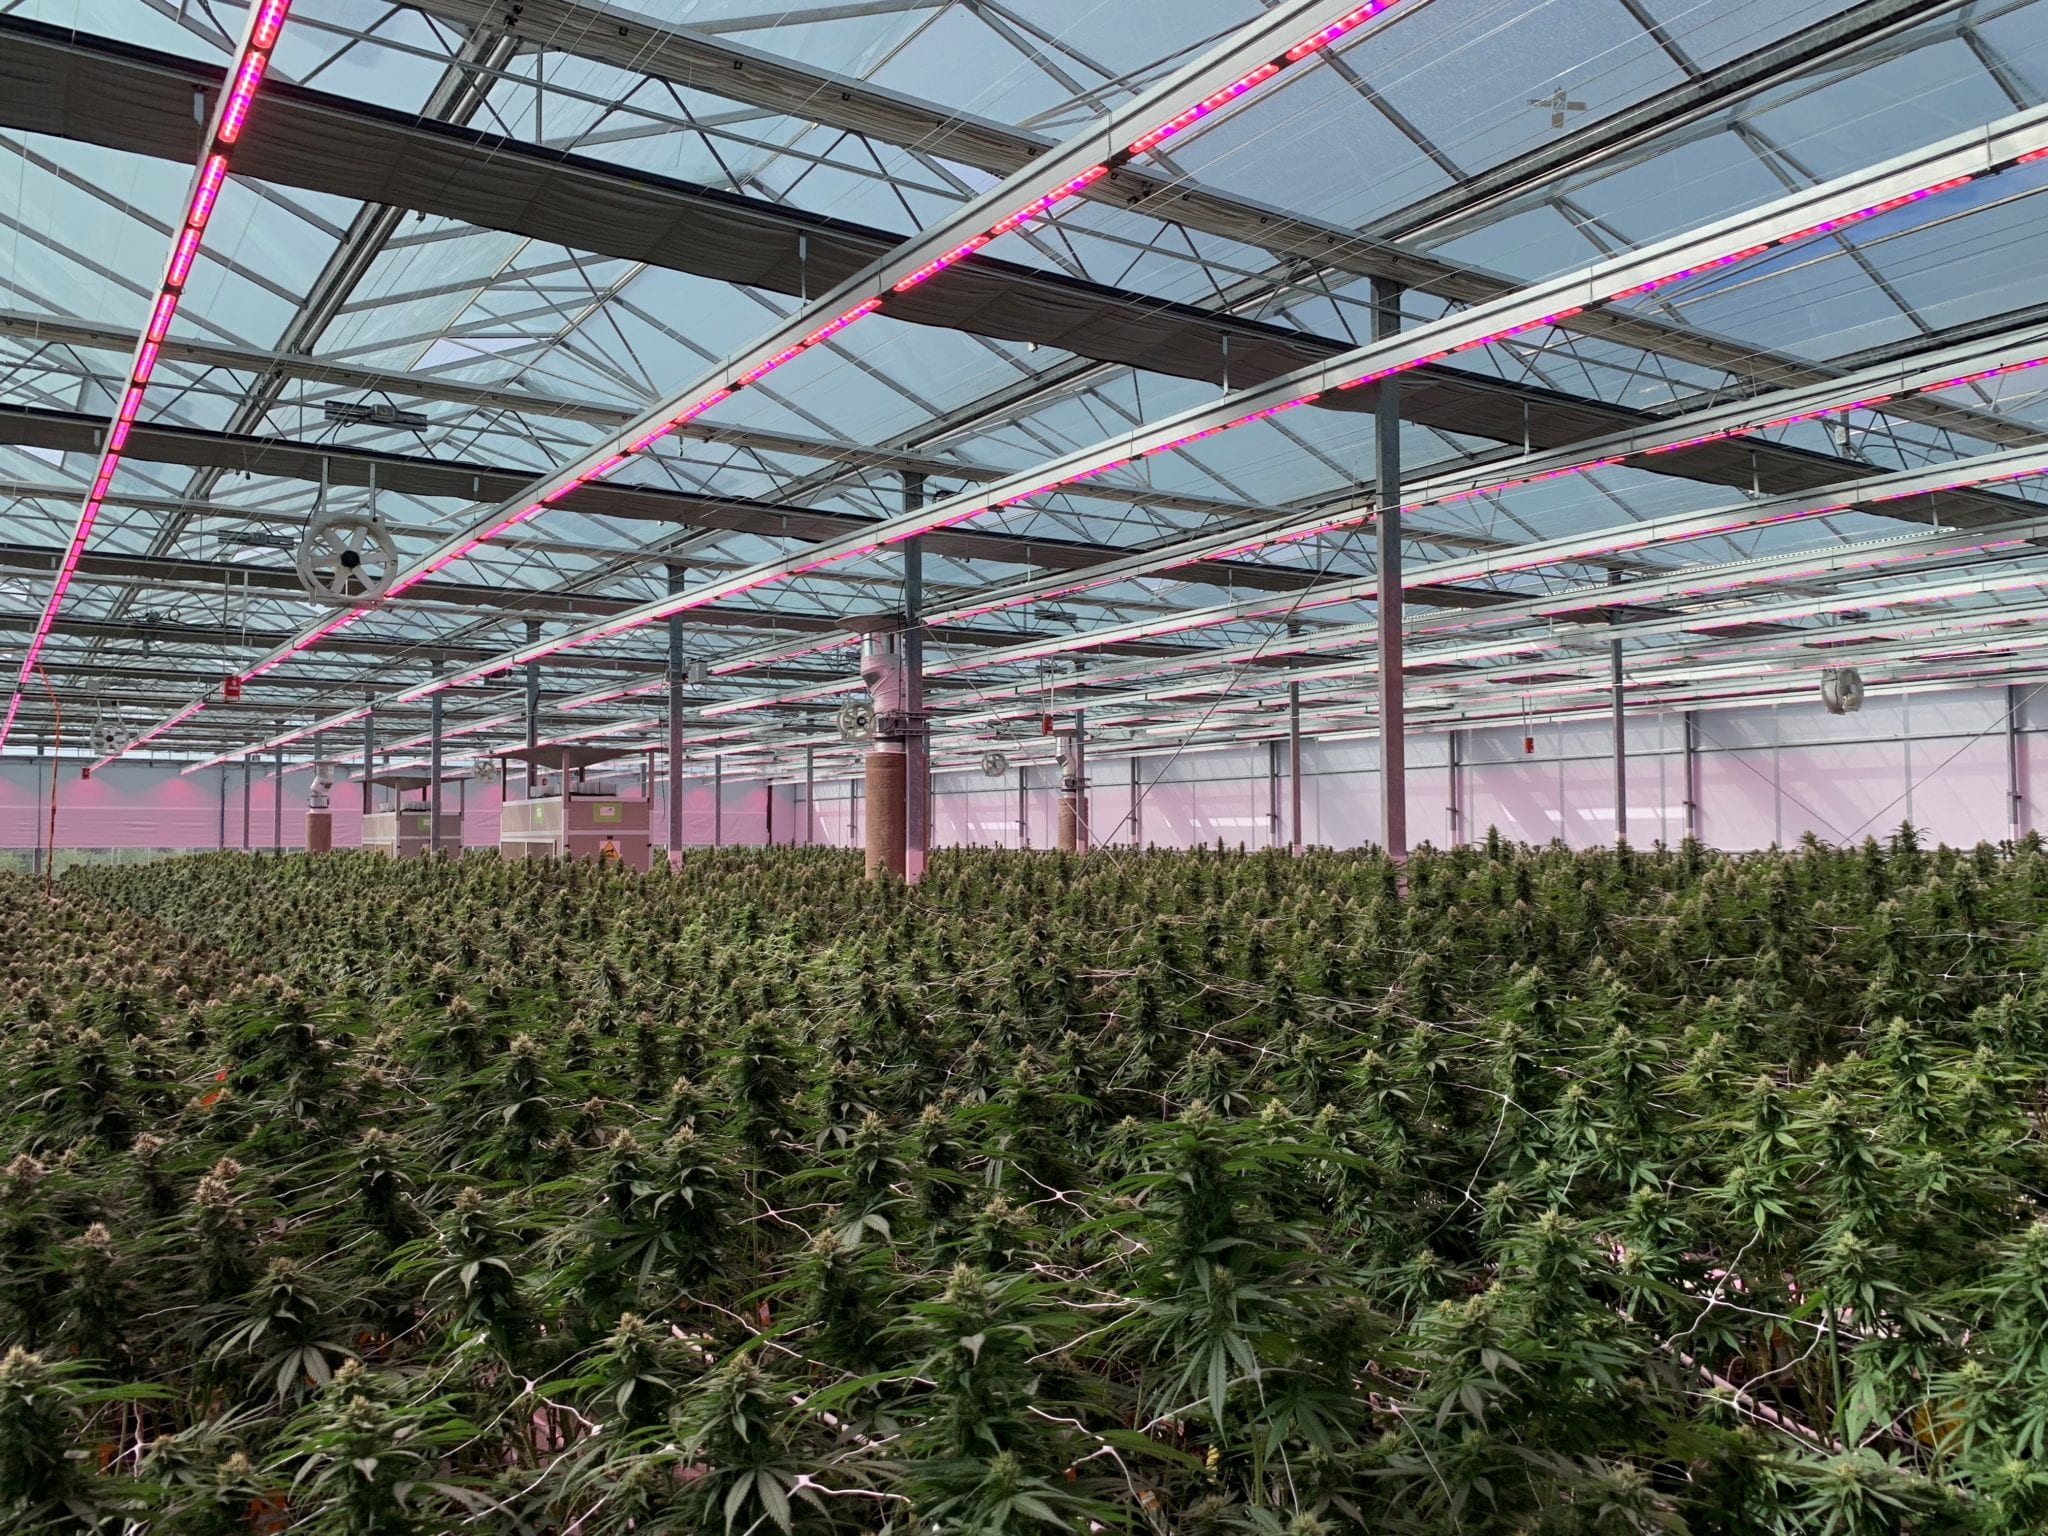 Rubicon Organic's Delta grow facility - Rubicon Organics signs distribution deal for new premium weed, acquires new genetics